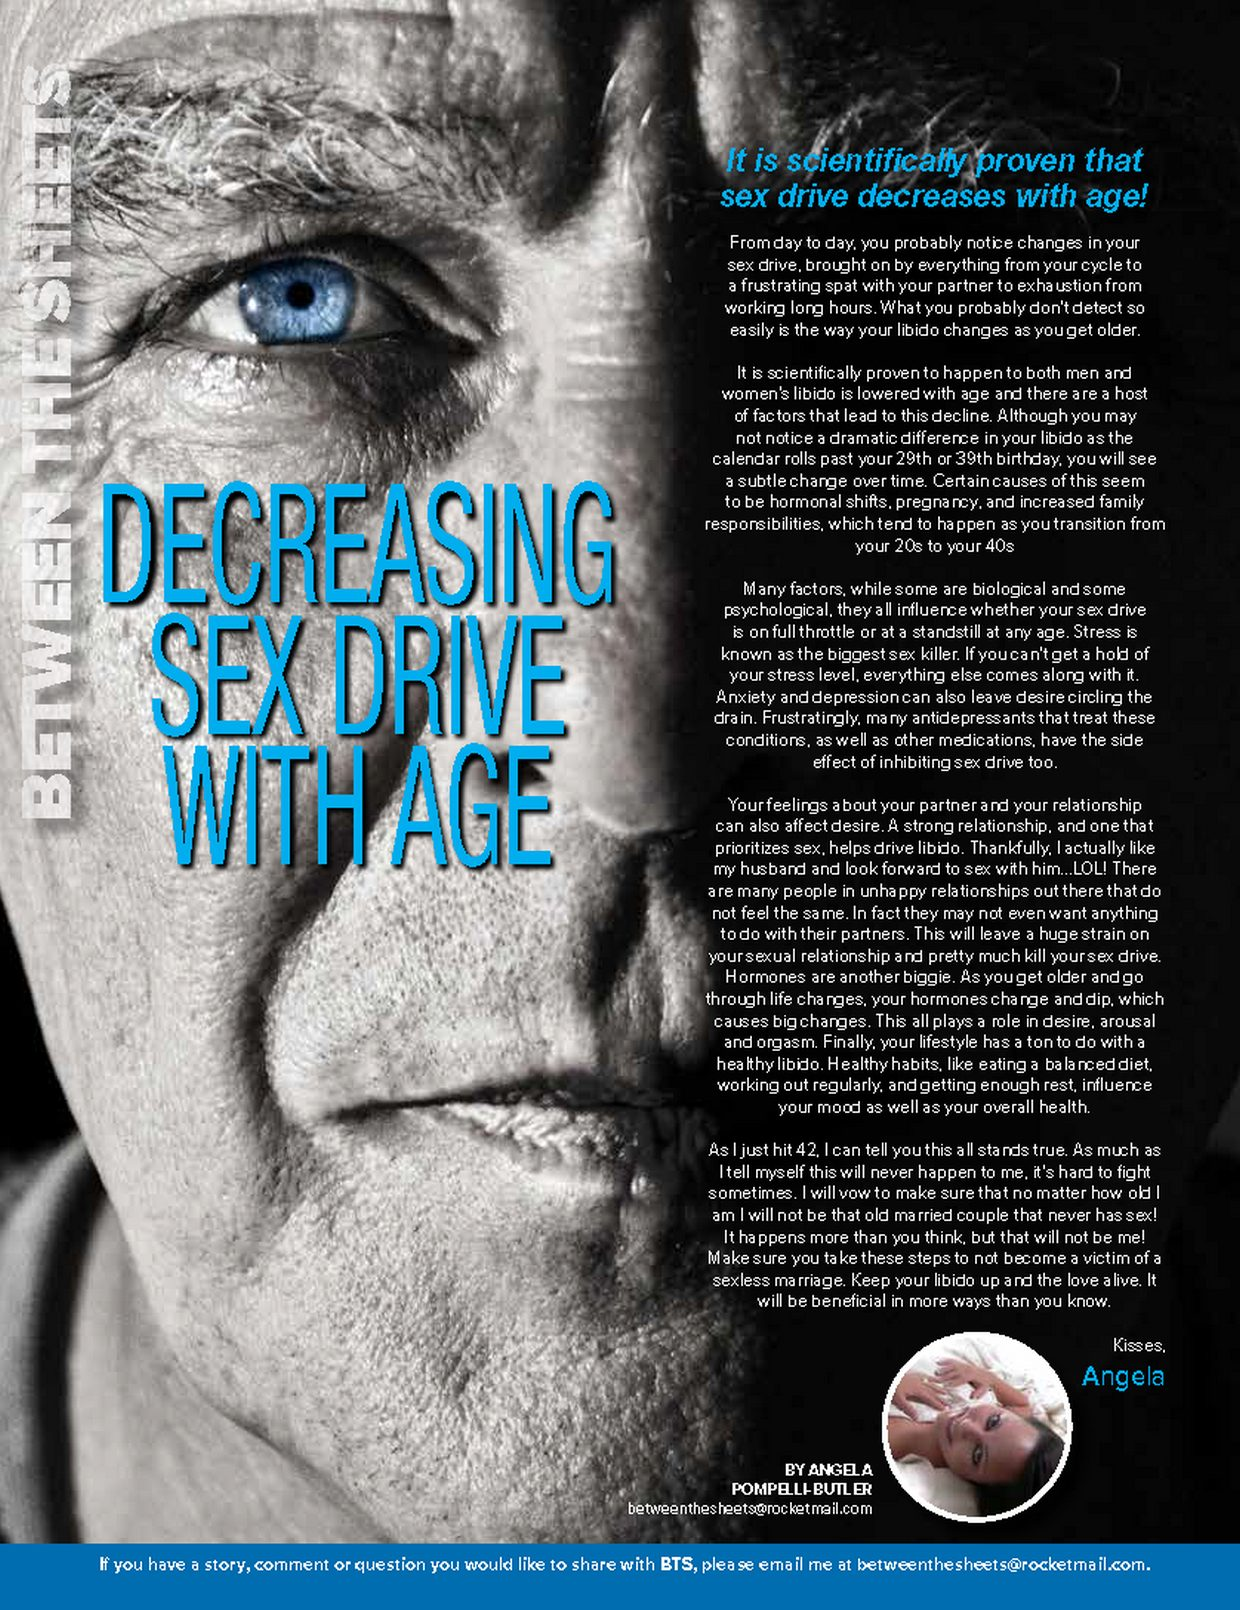 DECREASING SEX DRIVE WITH AGE